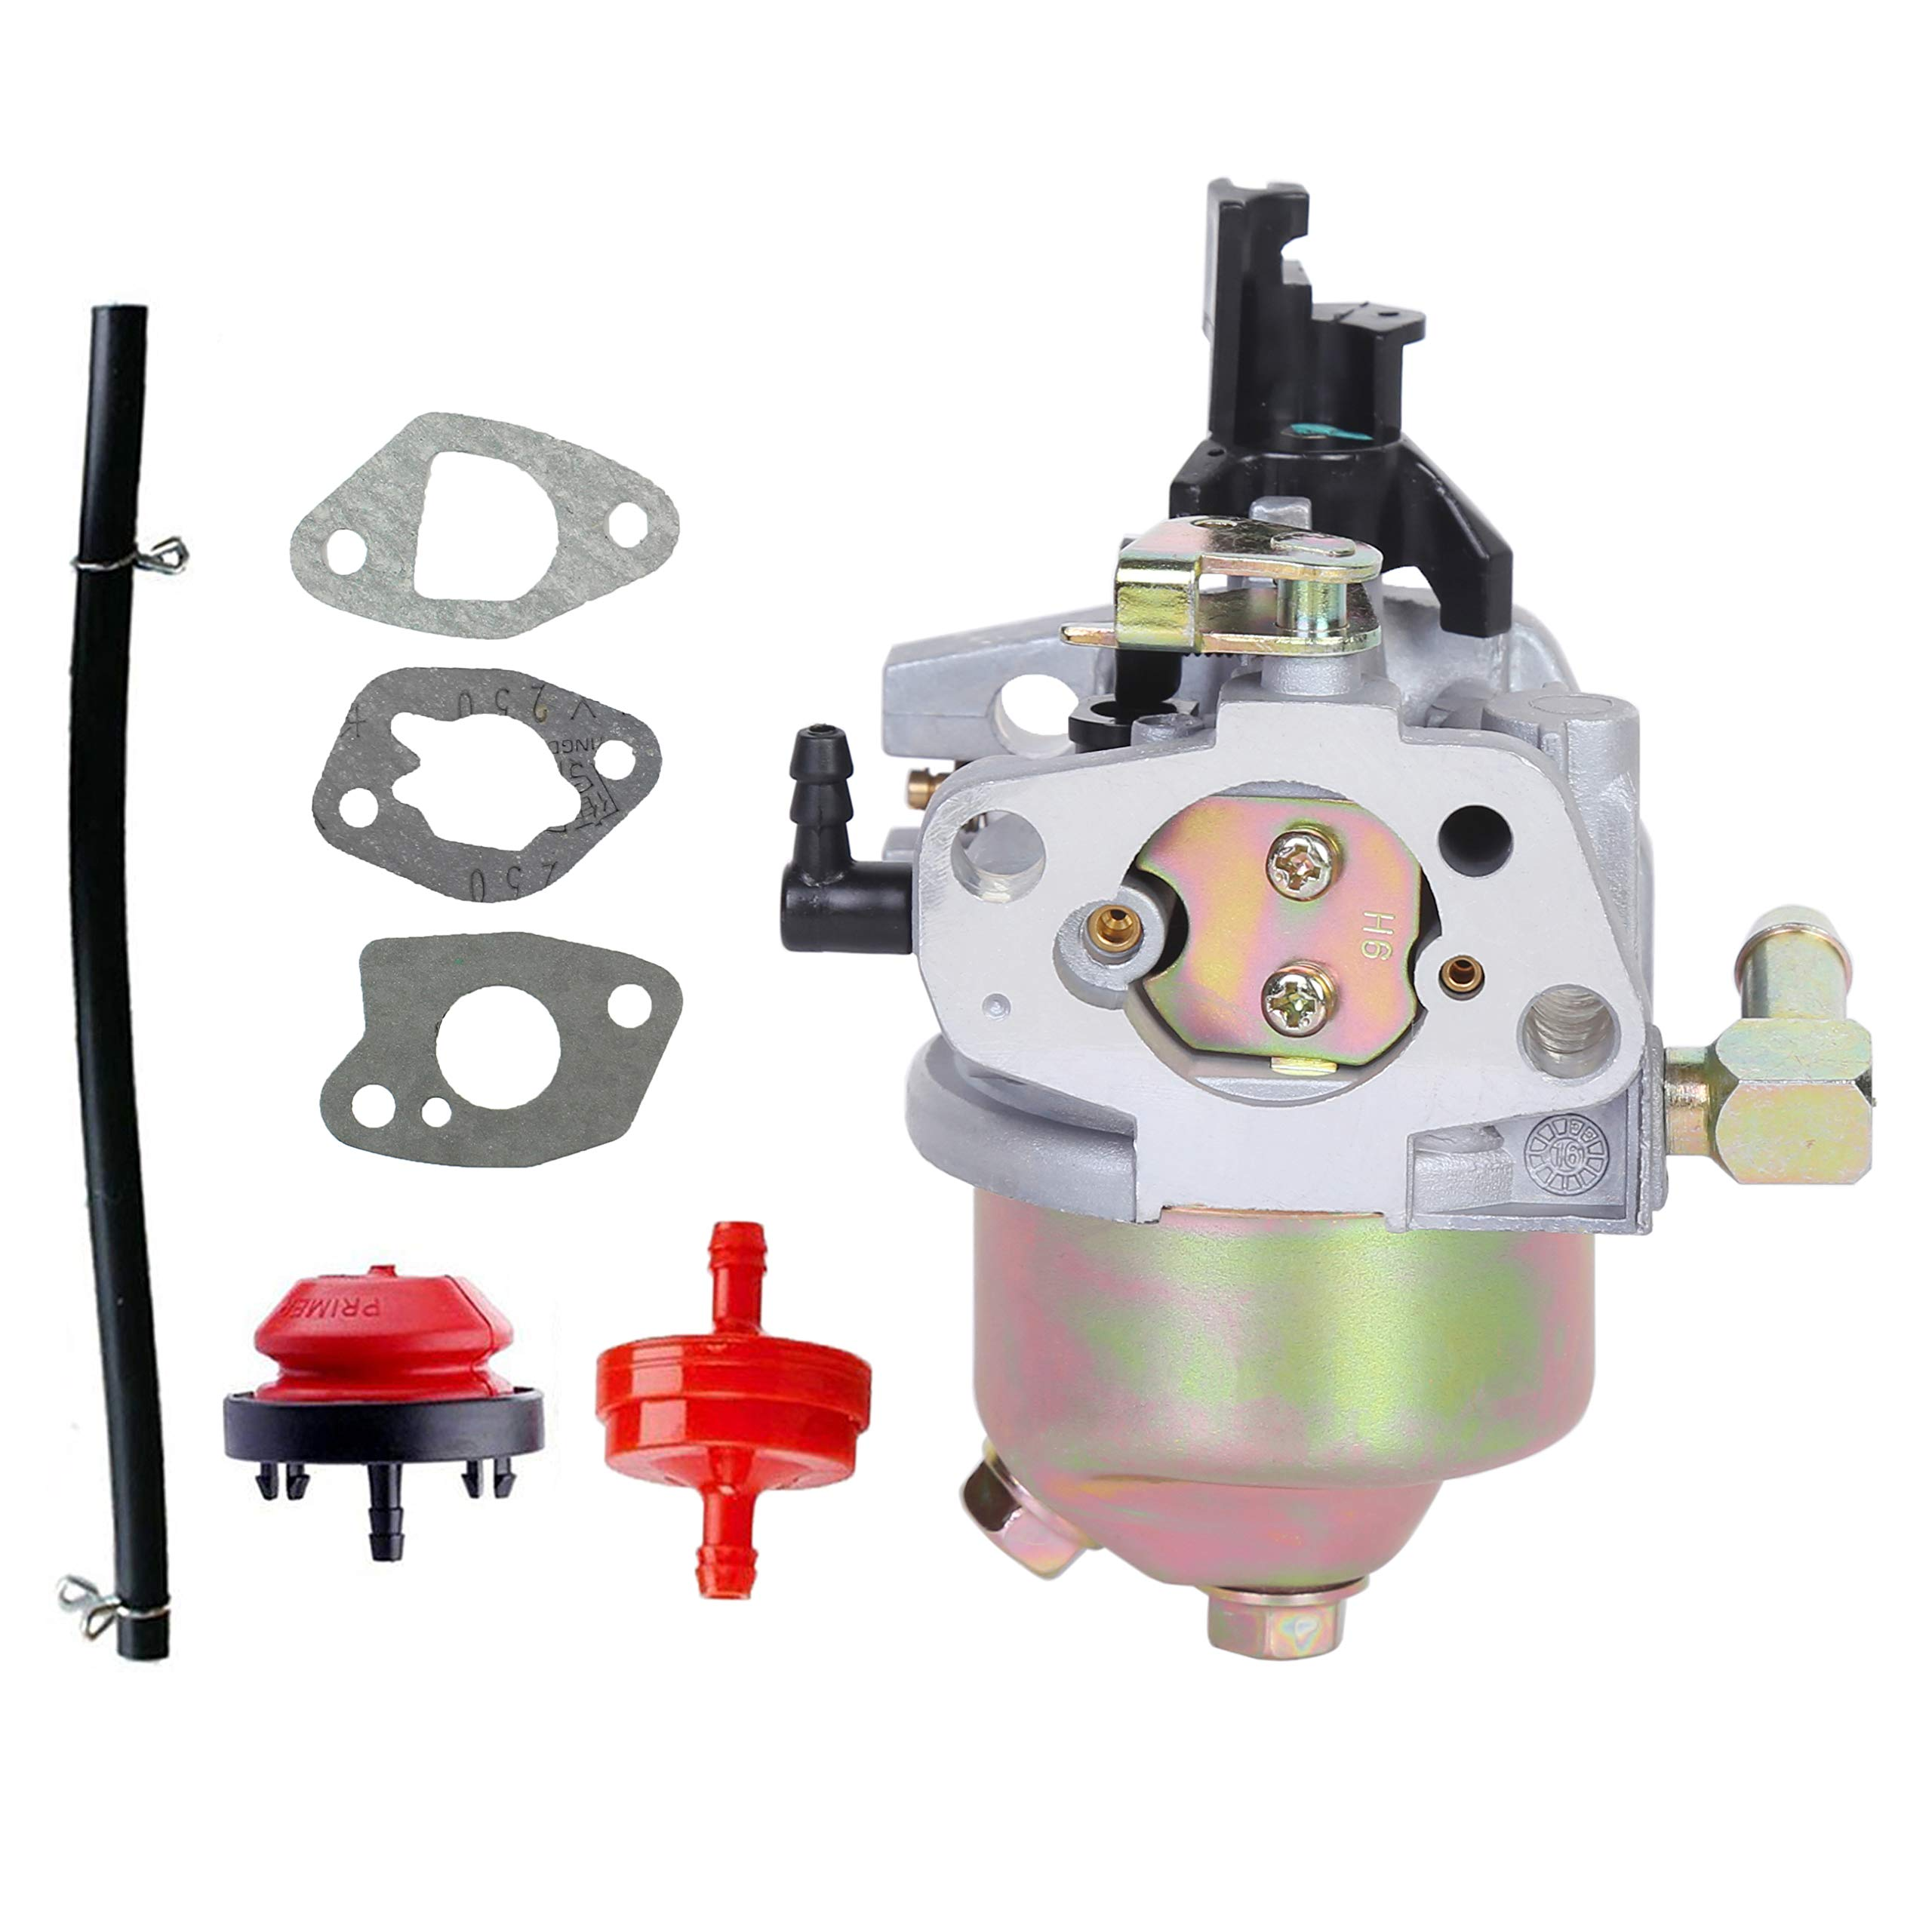 Pro Chaser 247.889571 Carburetor Replaces Craftsman 247.889701 247.886910 247.887200 247.889571 247.88955 247.881720 Snow Blower Fits MTD 270-QU 952Z265-SUA ZS365-SUA Engine Huayi 170SA 170SB Carb by Pro Chaser